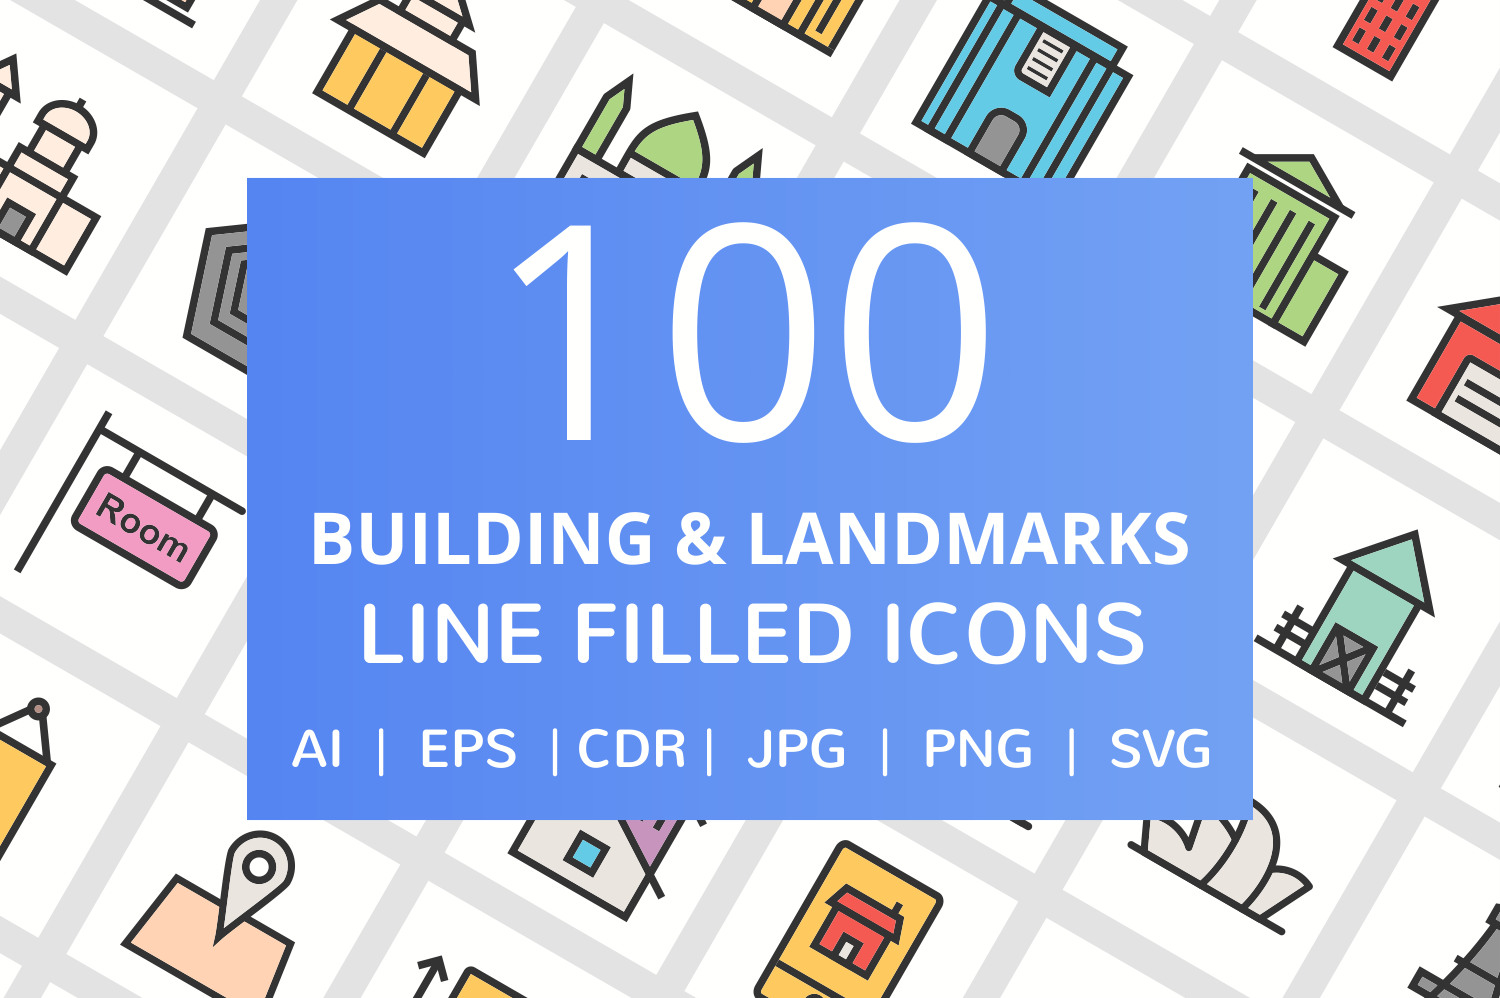 100 Building & Landmarks Filled Line Icons example image 1